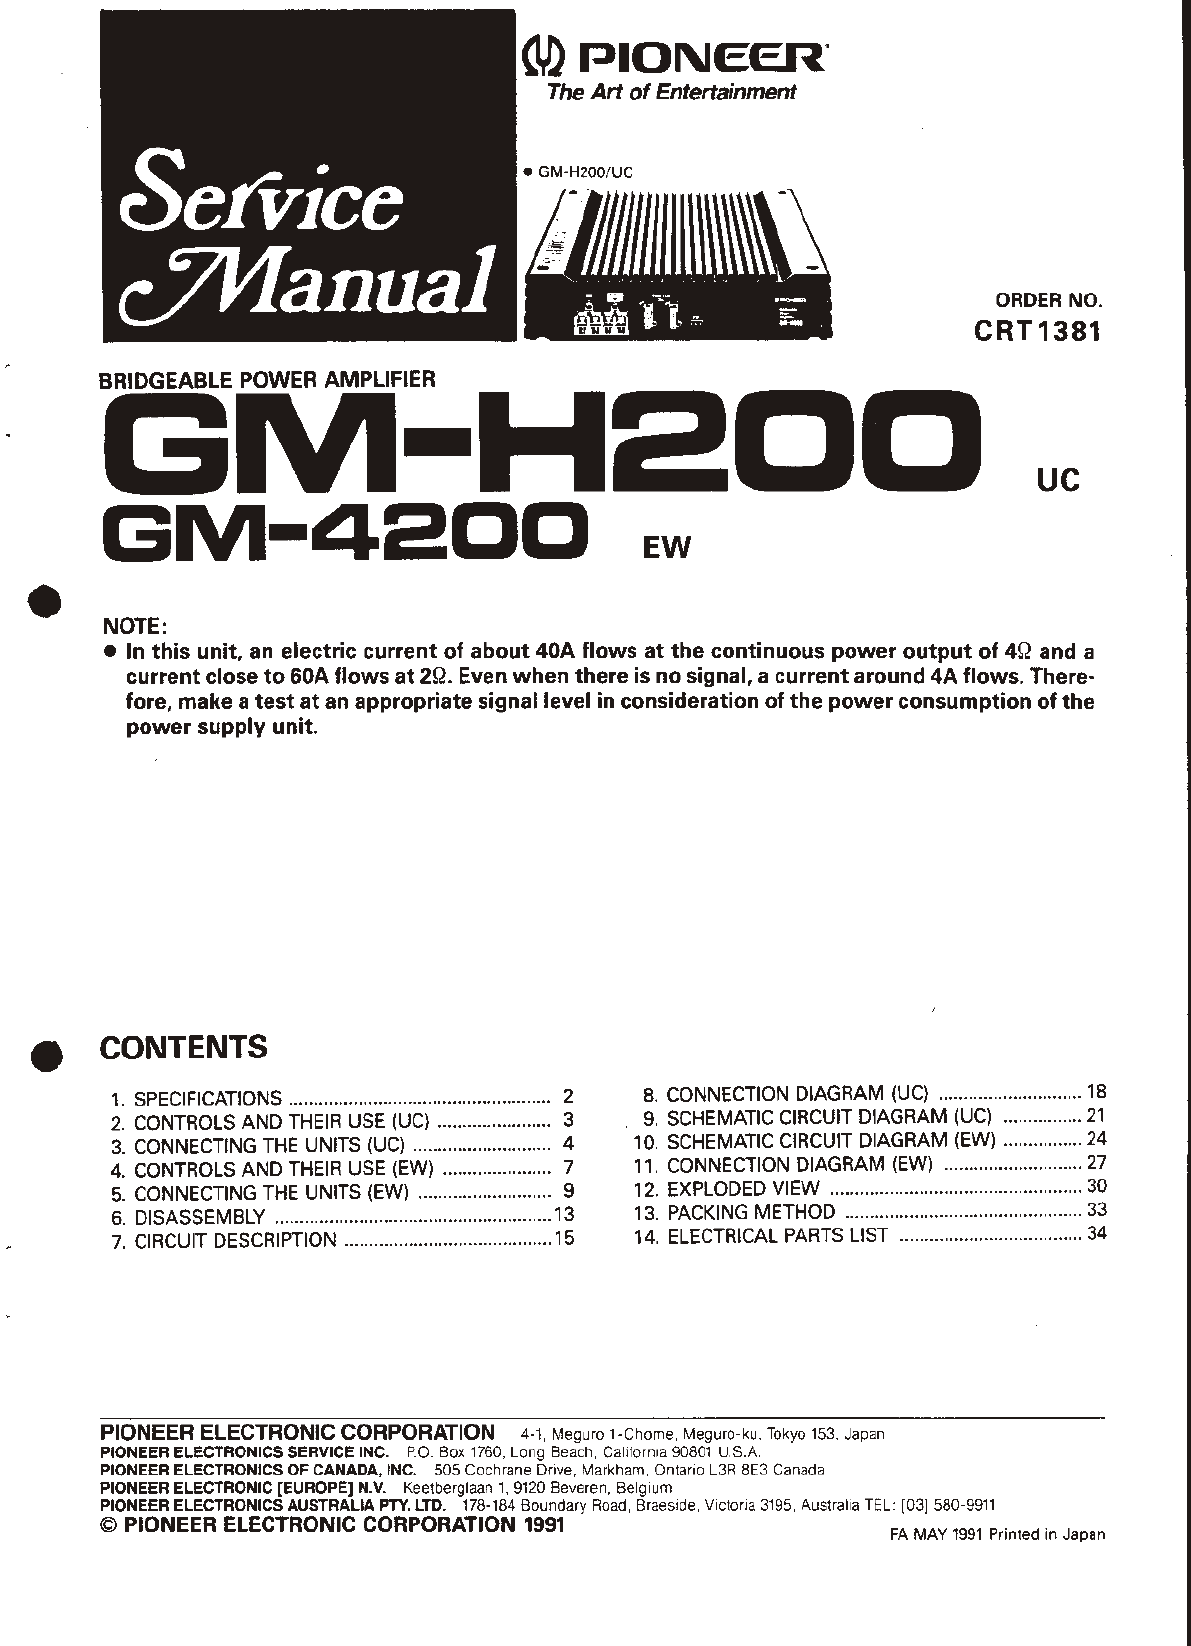 Pioneer Gm 4200 Stereo Amplifier User Manual Power Lifier Circuit Diagram On Wiring Philips Refrigerator Be6fc37b 2782 4ba3 9ae8 70c0b47217a6 Bg1